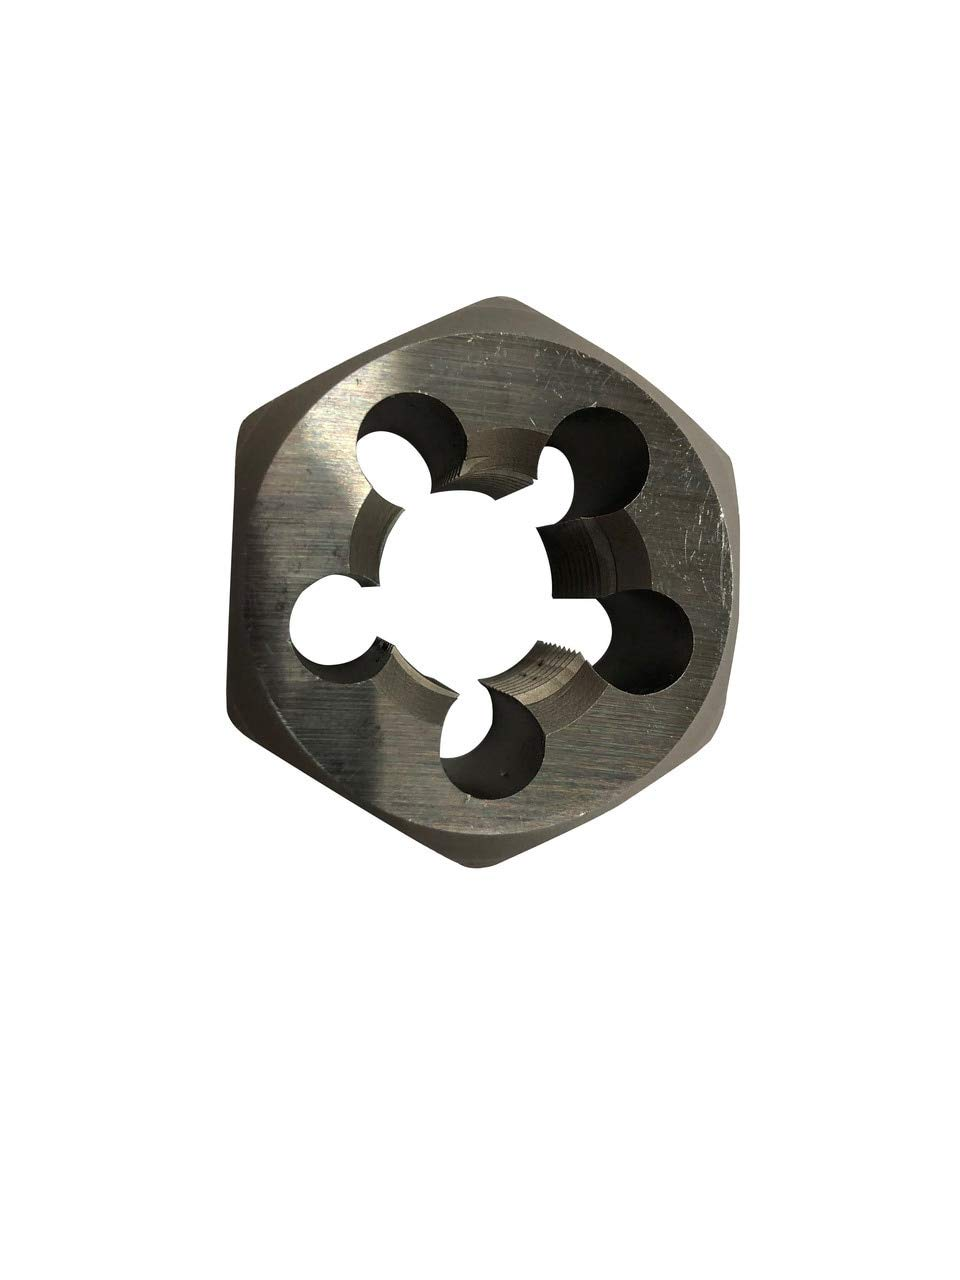 Hex Die Metric 6.00mm x0.50mm Carbon Steel